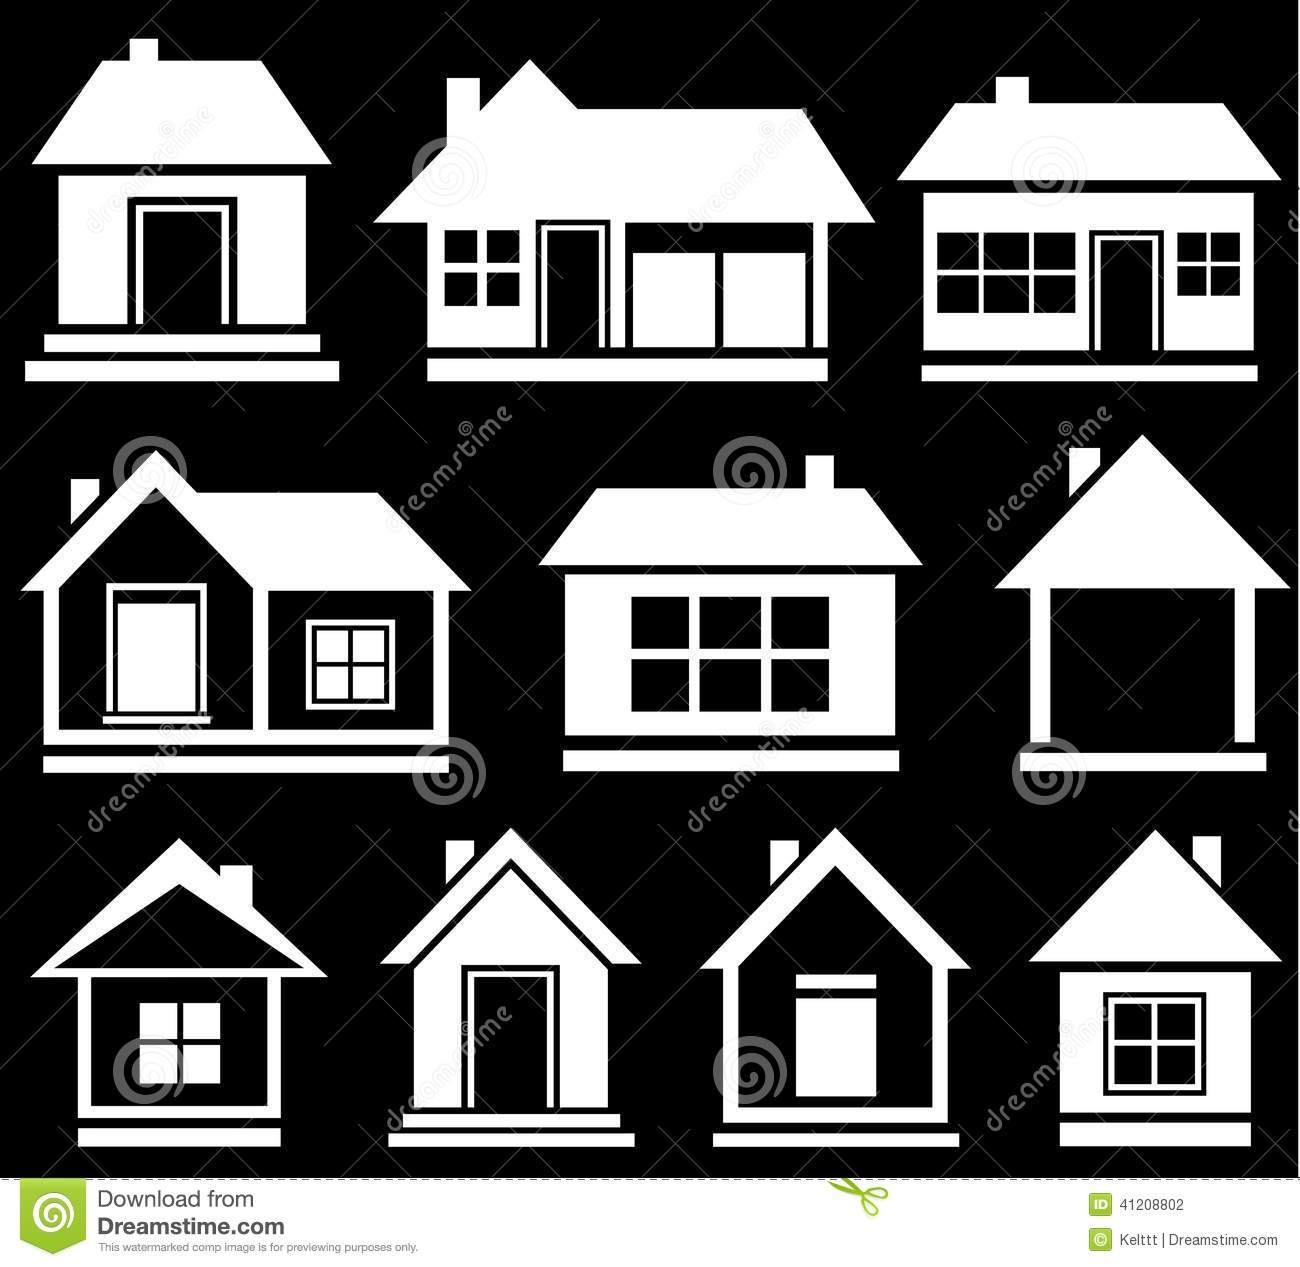 Modern house silhouette variety of modern black icon silhouette set